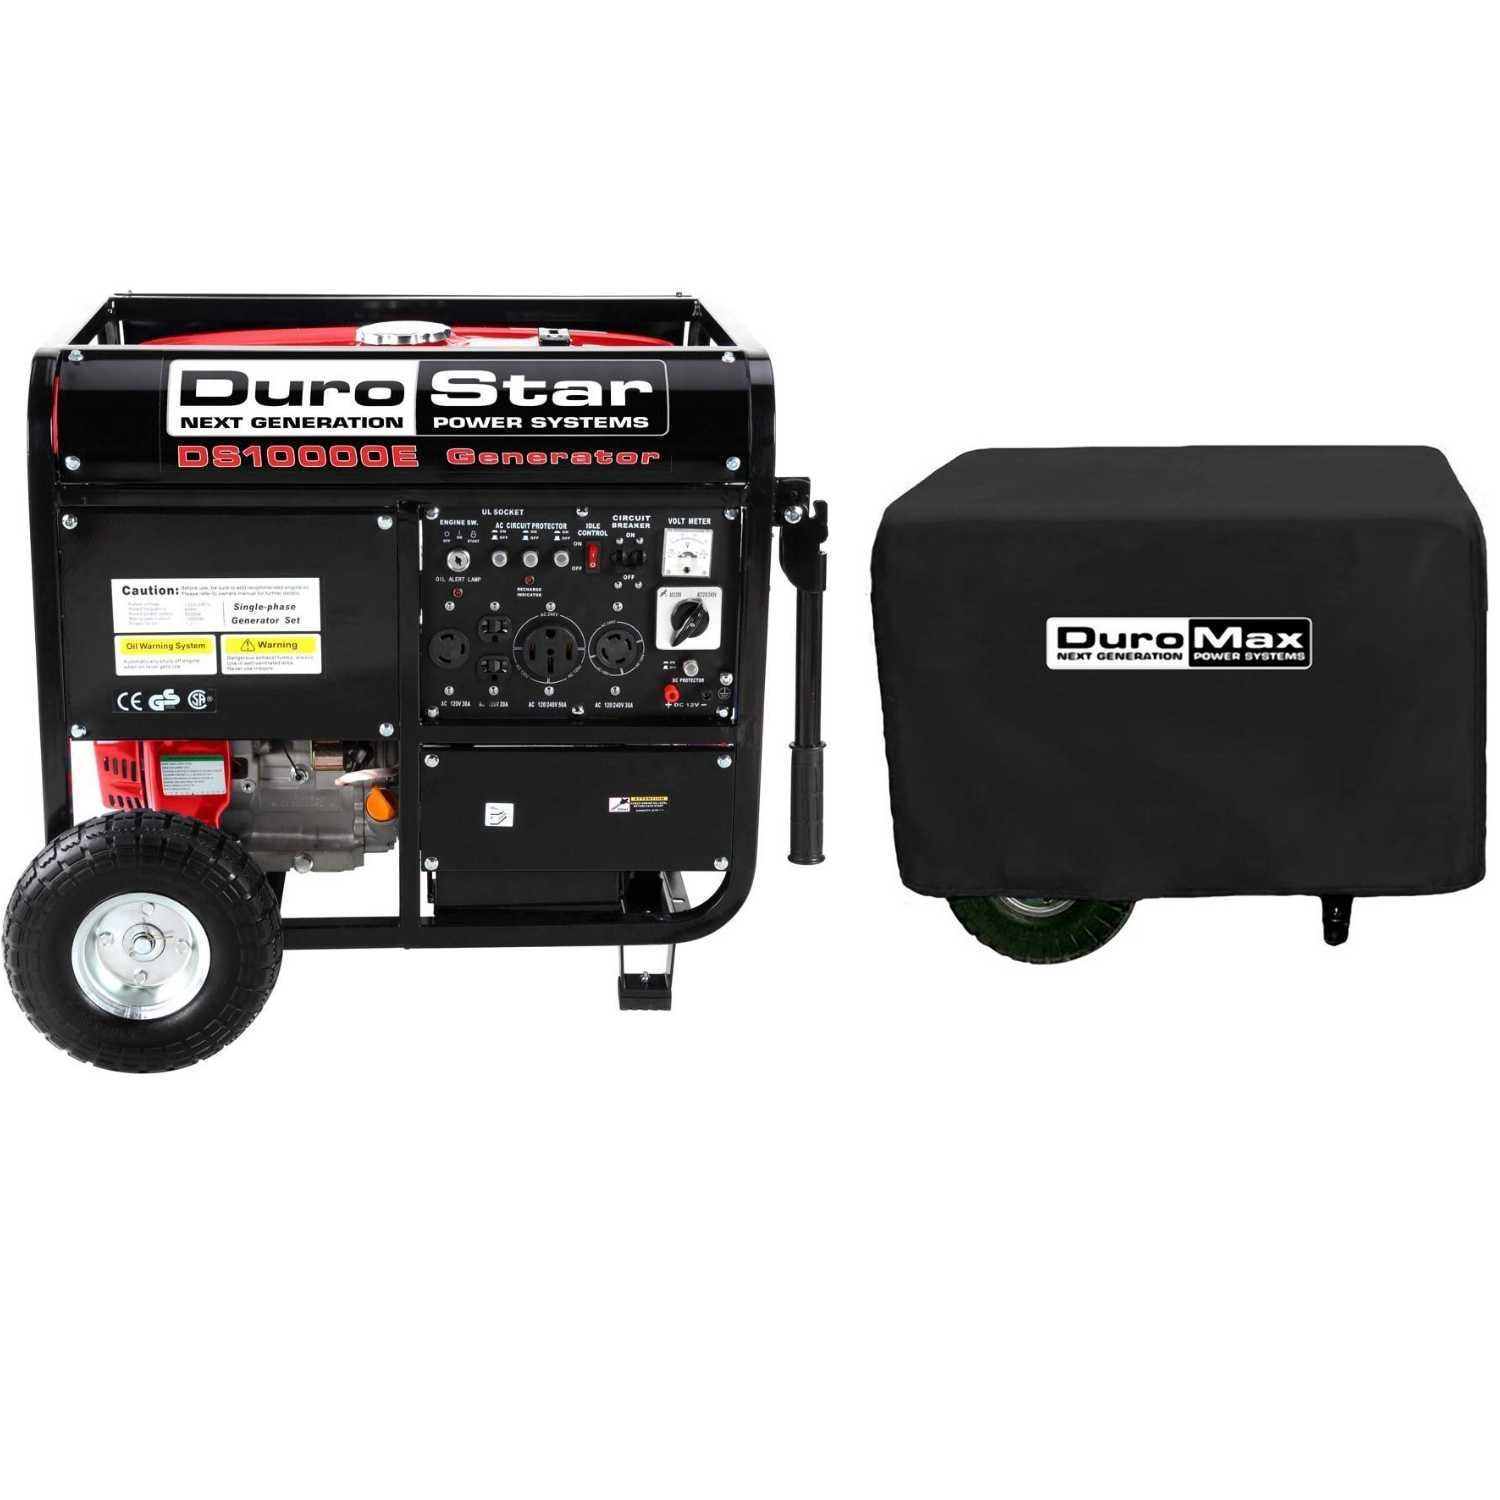 DuroStar DS10000E, 8000 Running Watts/10000 Starting Watts, Gas Powered Portable Generator+ DuroMax XPLGC